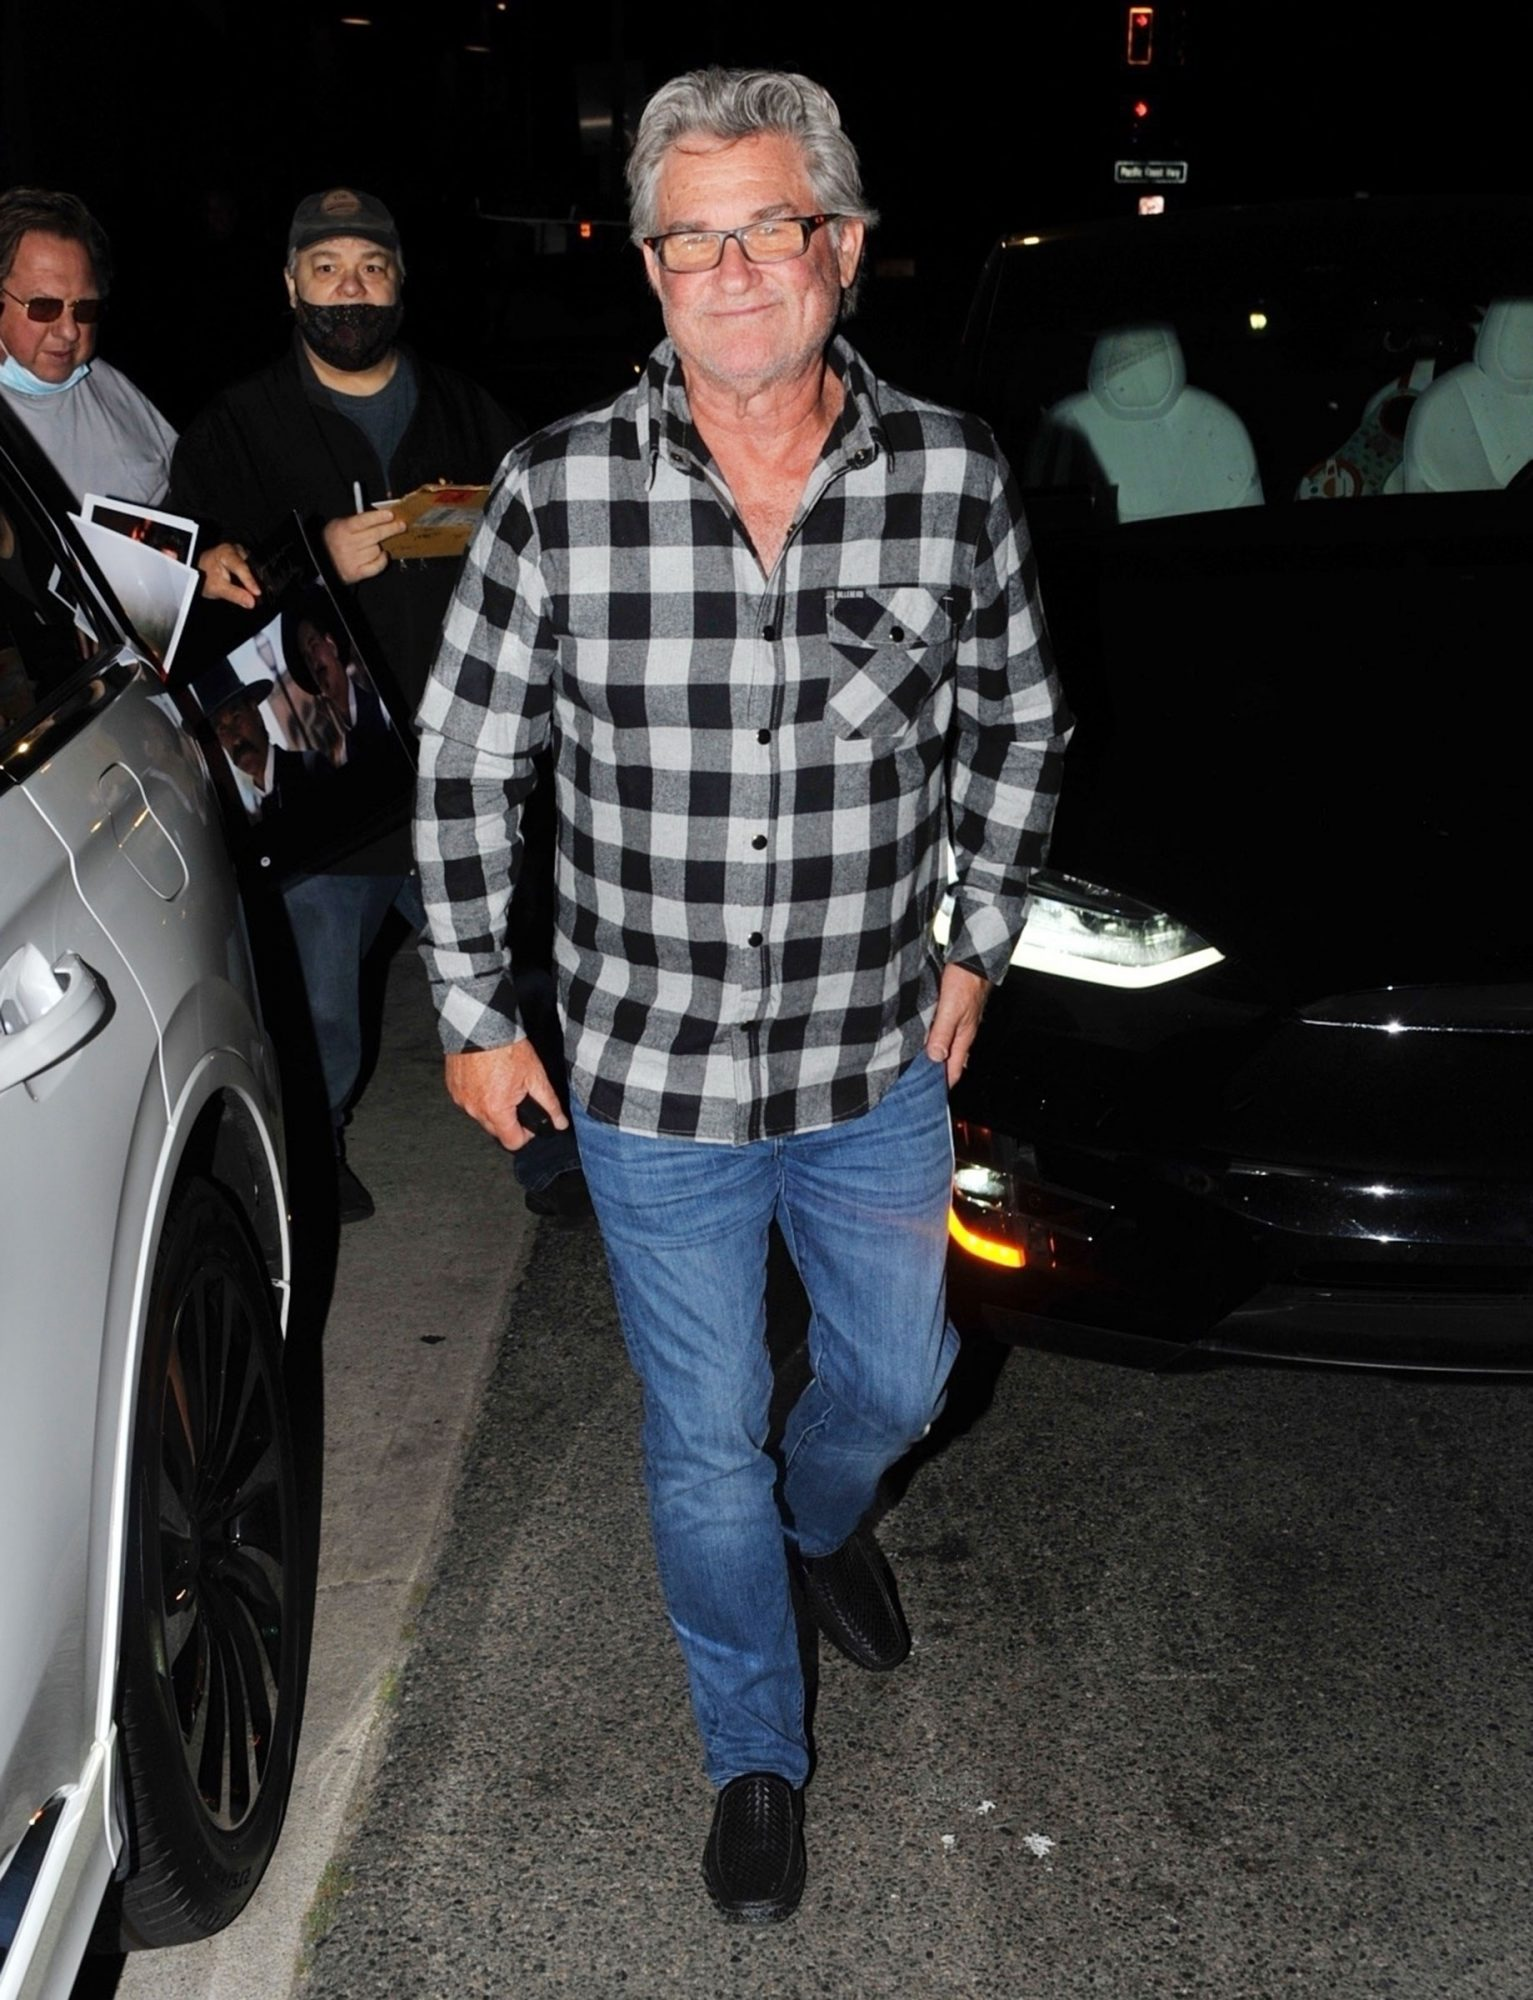 Kurt Russell, Goldie Hawn, and Kate Hudson leave after dinner at Giorgio Baldi